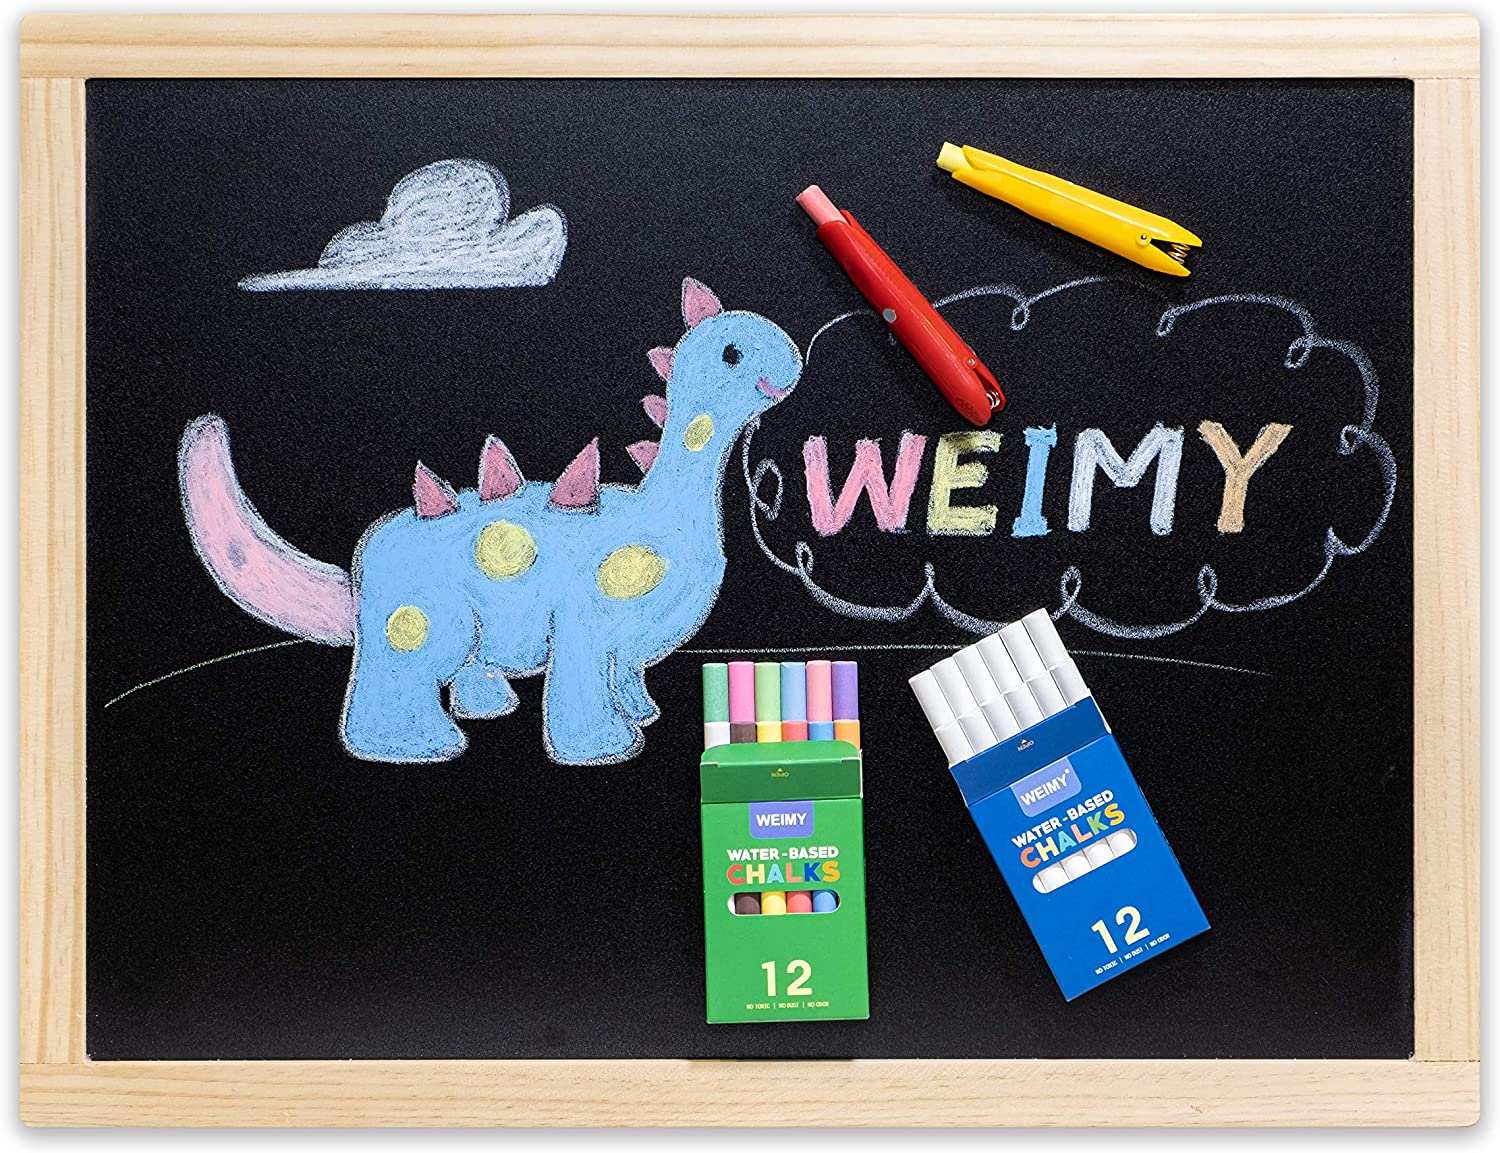 12CWH-RED WEIMY 12-Count Colored /&12-Count White Dustless Chalks Non-Toxic Truly Dust Free Chalk for Art Decorating Whiteboard Blackboard Includes Fun Magnetic Chalk Holder